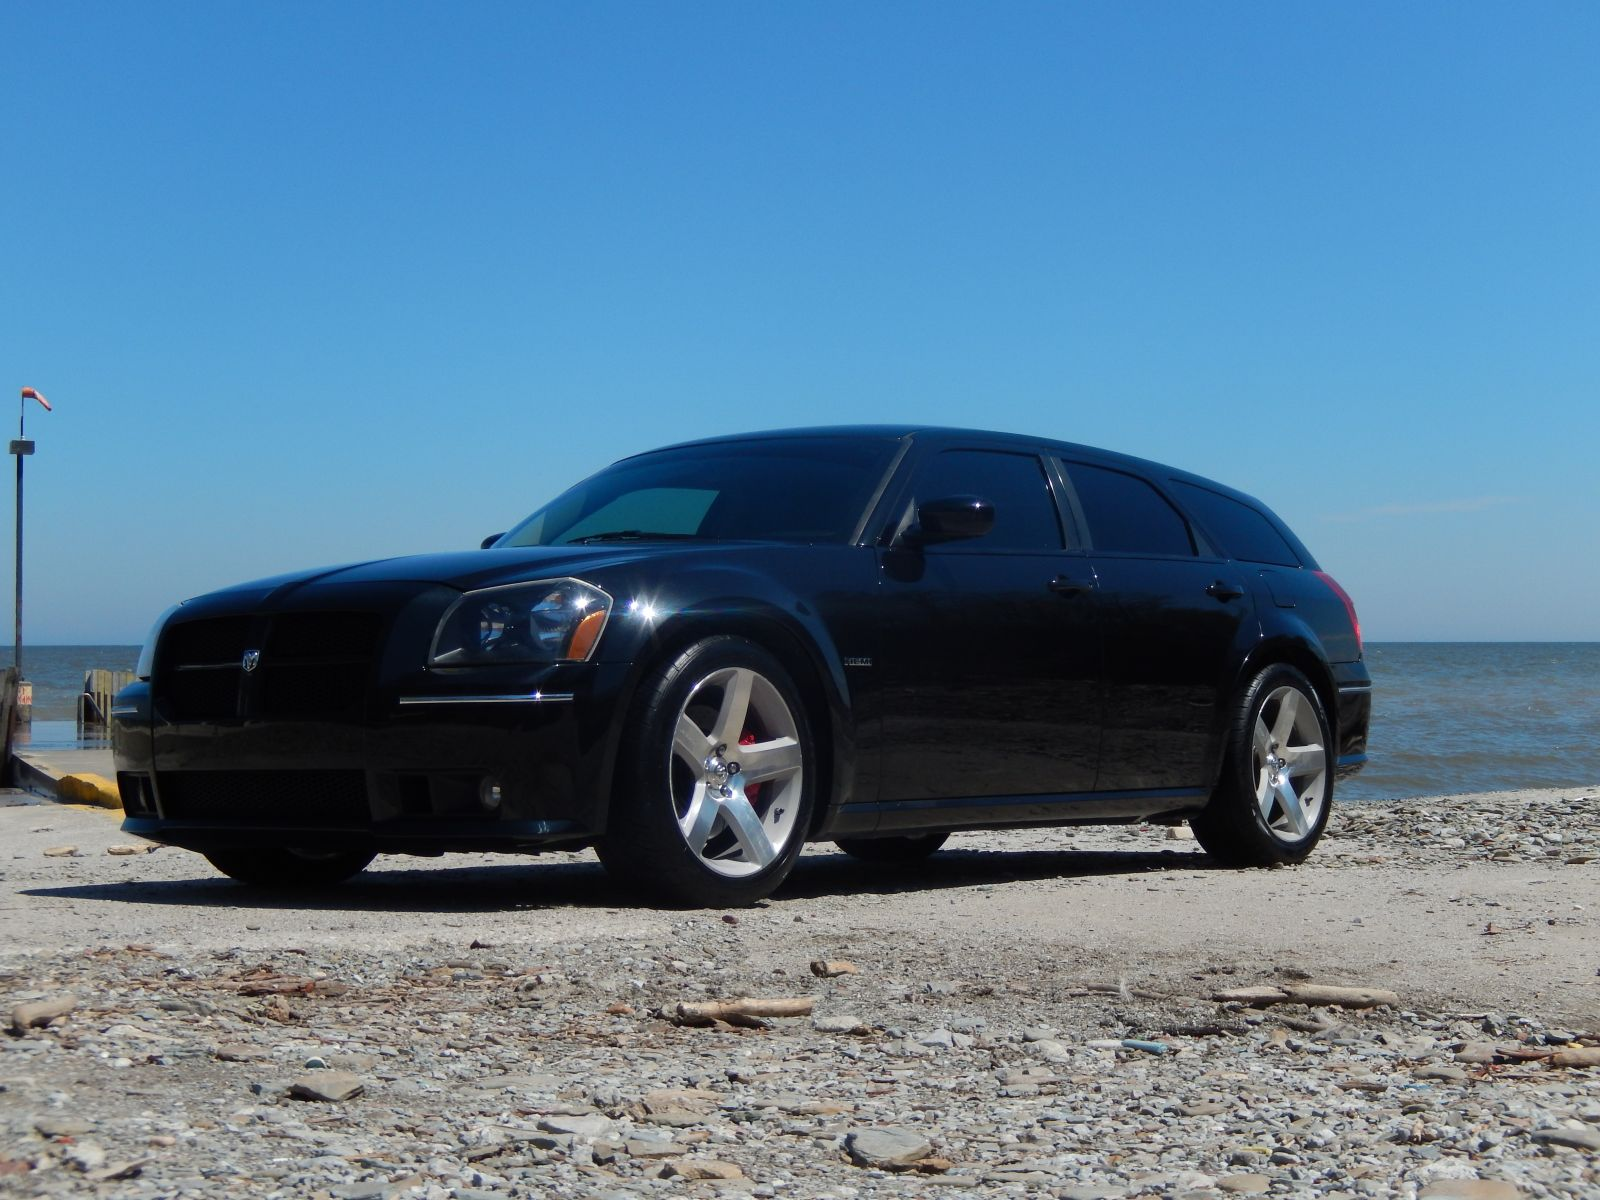 Wrecked Cars For Sale >> 2006 Dodge Magnum SRT8 6.1L HEMI 425HP 92K - Cleveland Power & Performance